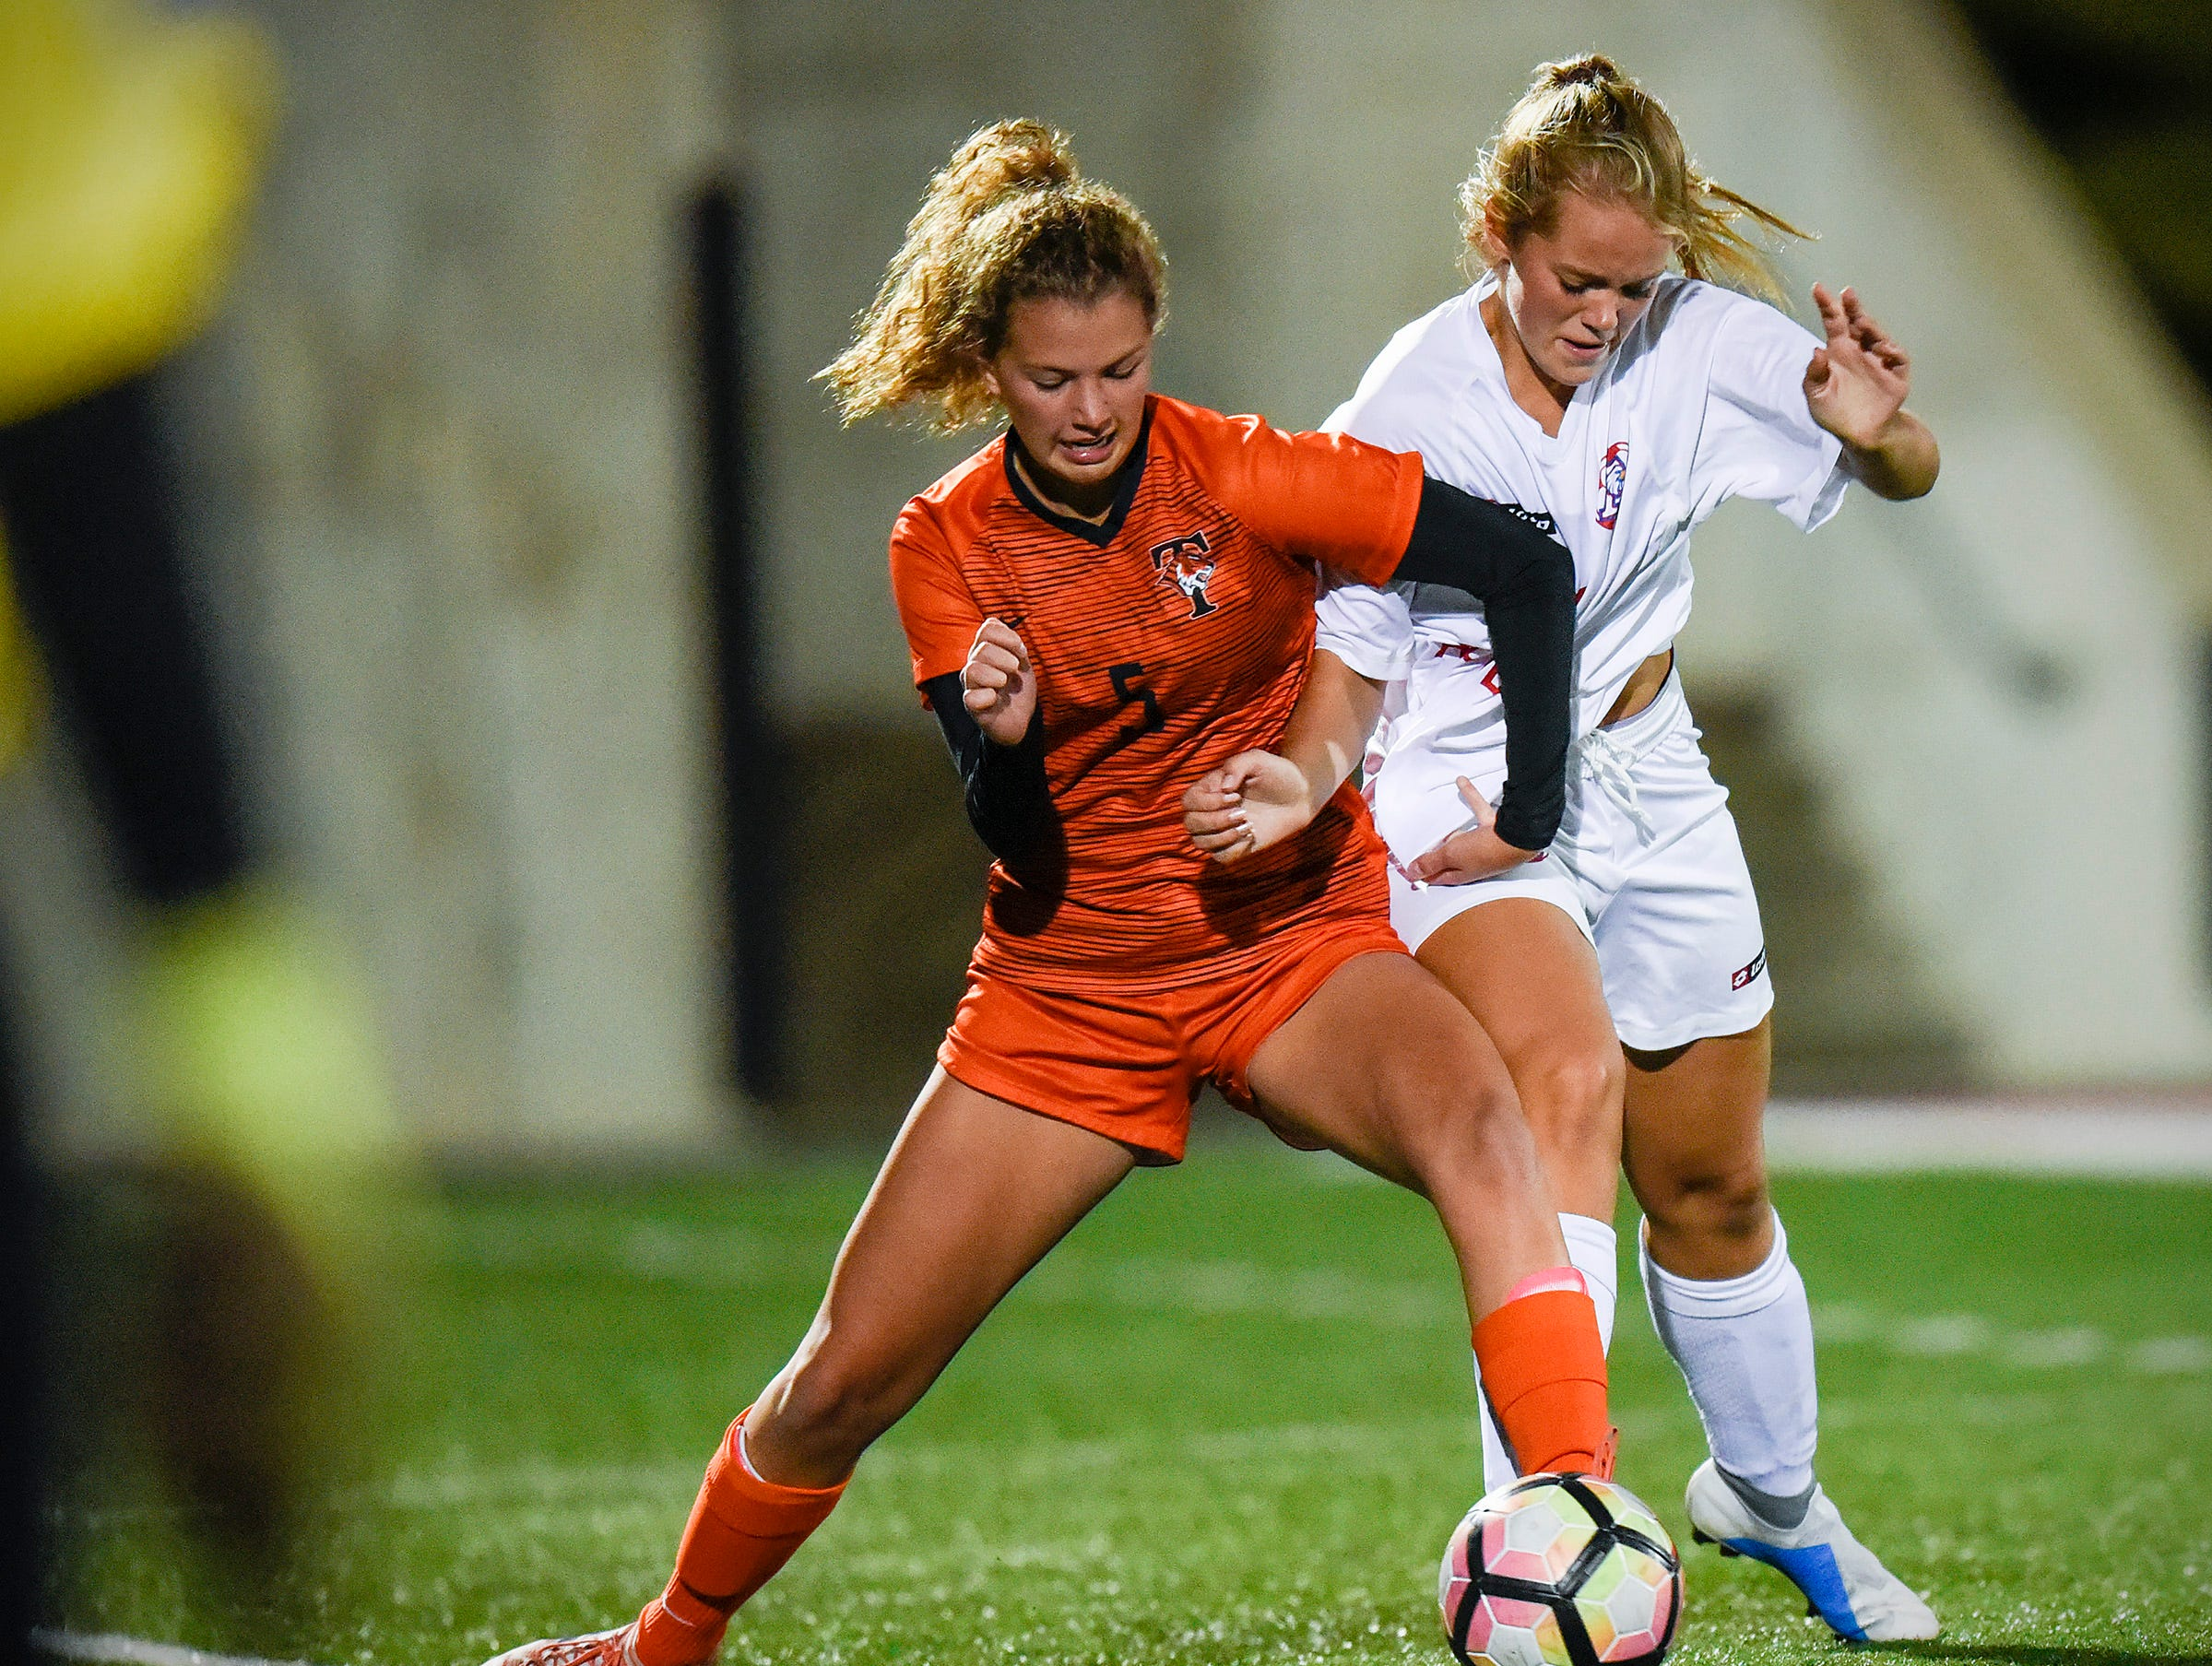 Tech's Gabrielle Rud and Apollo's Kylie Mondloch battle for the ball during the second half Thursday, Sept. 27, at Husky Stadium.